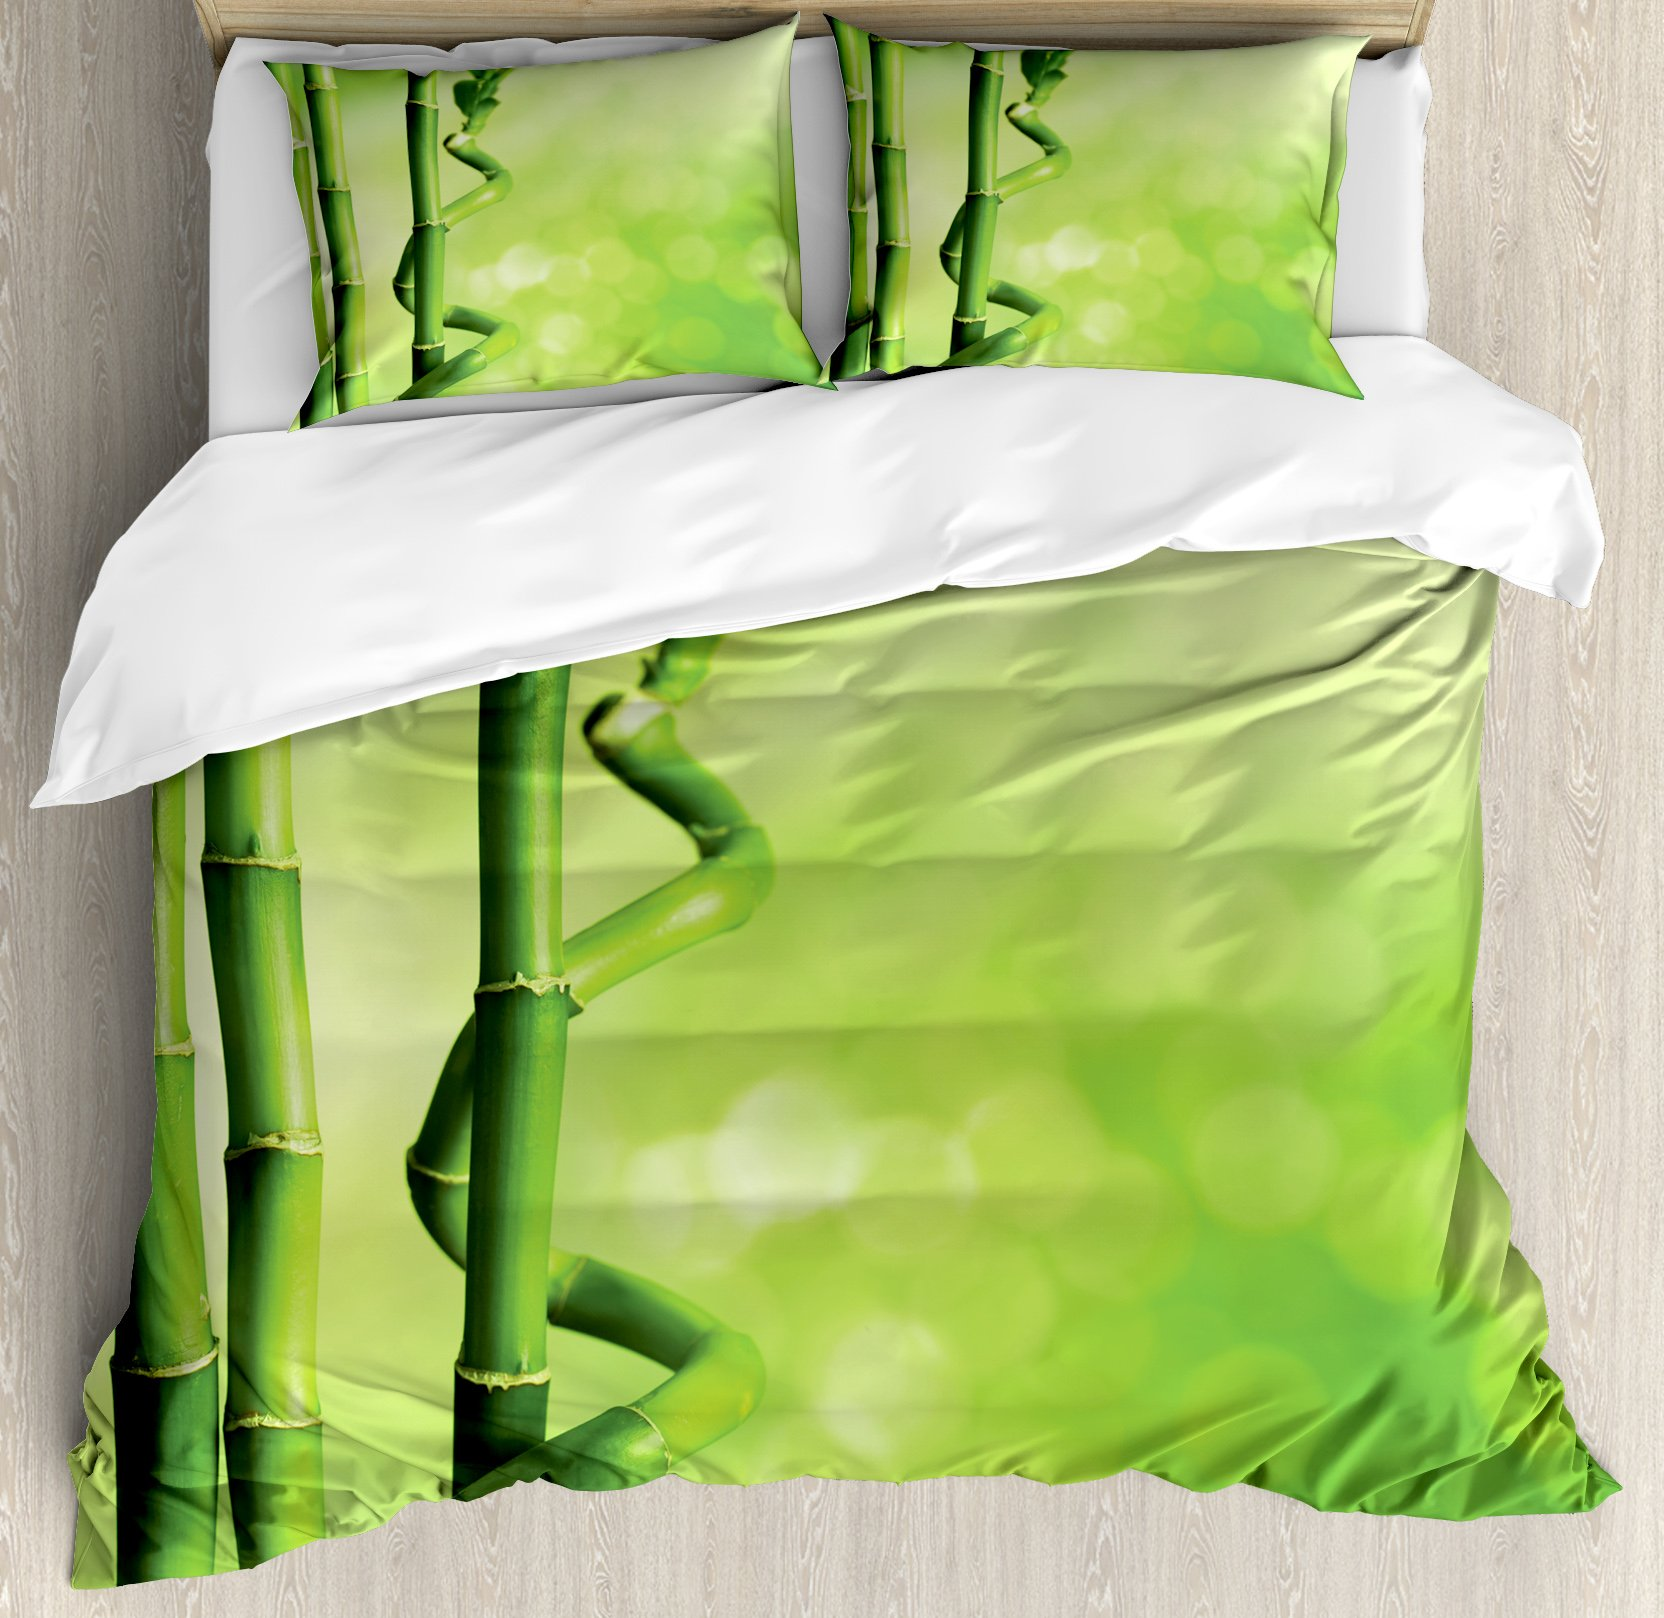 Green King Size Duvet Cover Set by Ambesonne, Bamboo Stems Nature Ecology Sunbeams Soft Spring Scenic Spa Health Relaxation, Decorative 3 Piece Bedding Set with 2 Pillow Shams, Green Light Green